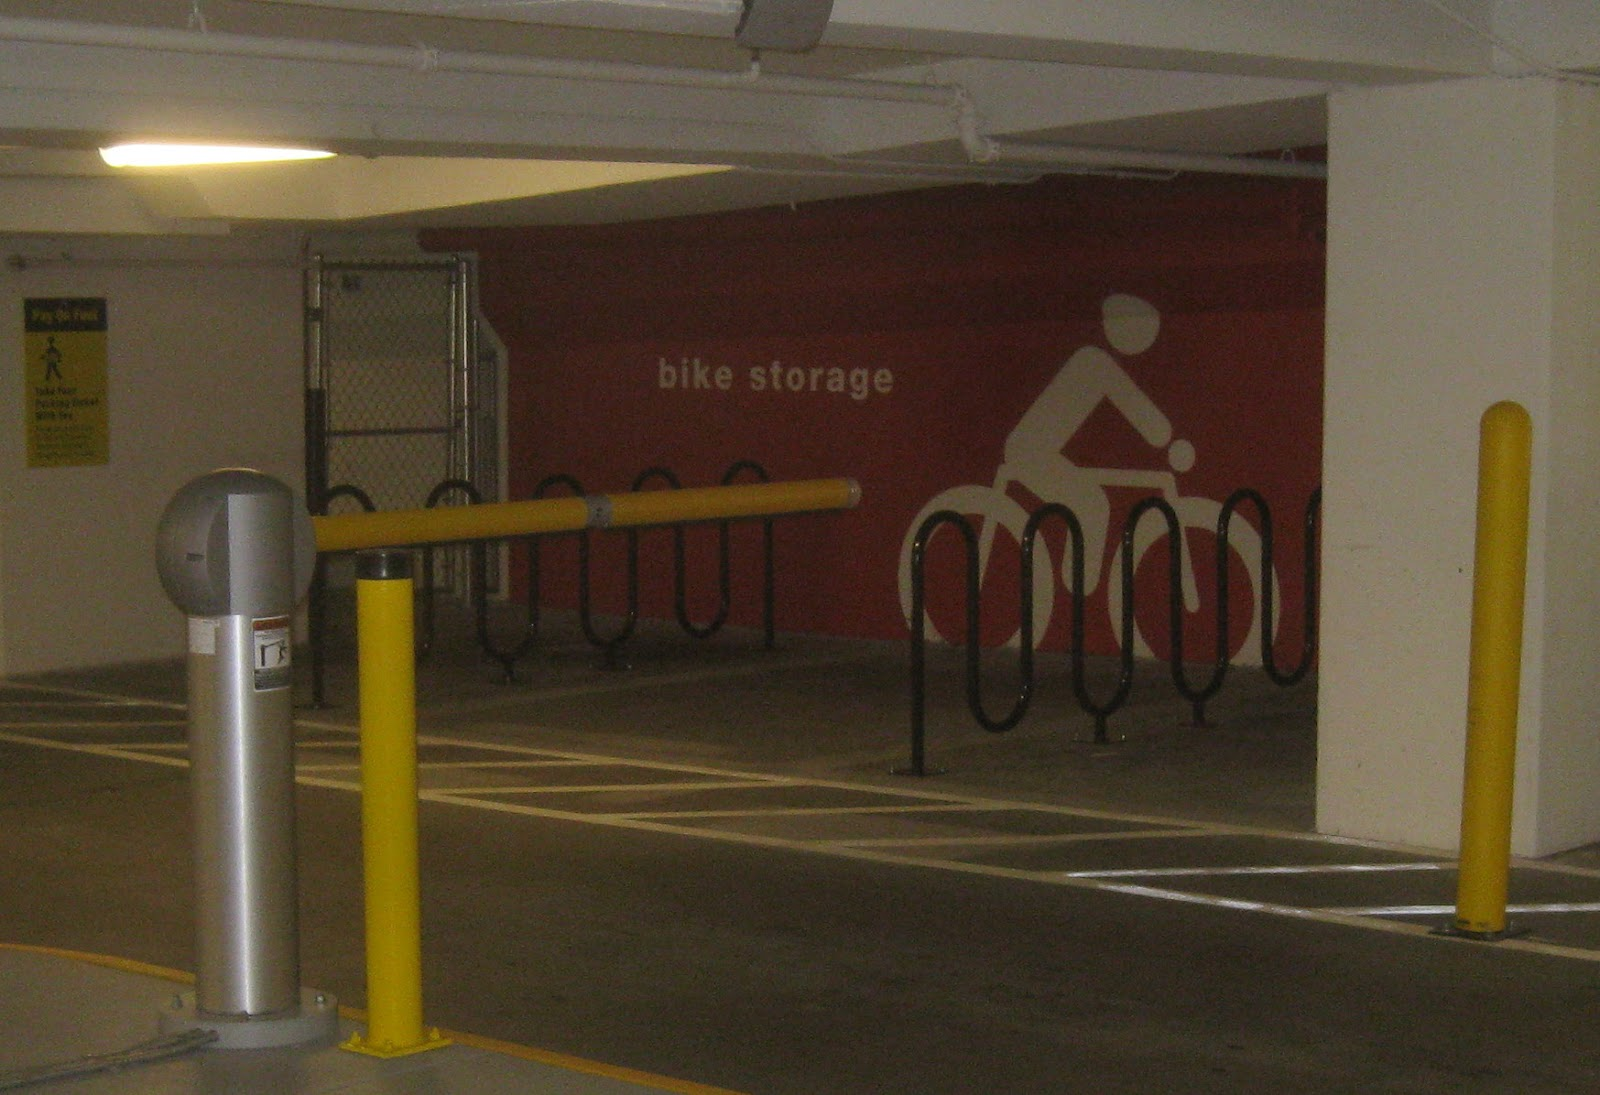 Parking Garage Bike Rack Transportation Nag Citytarget A Transportation Near Miss